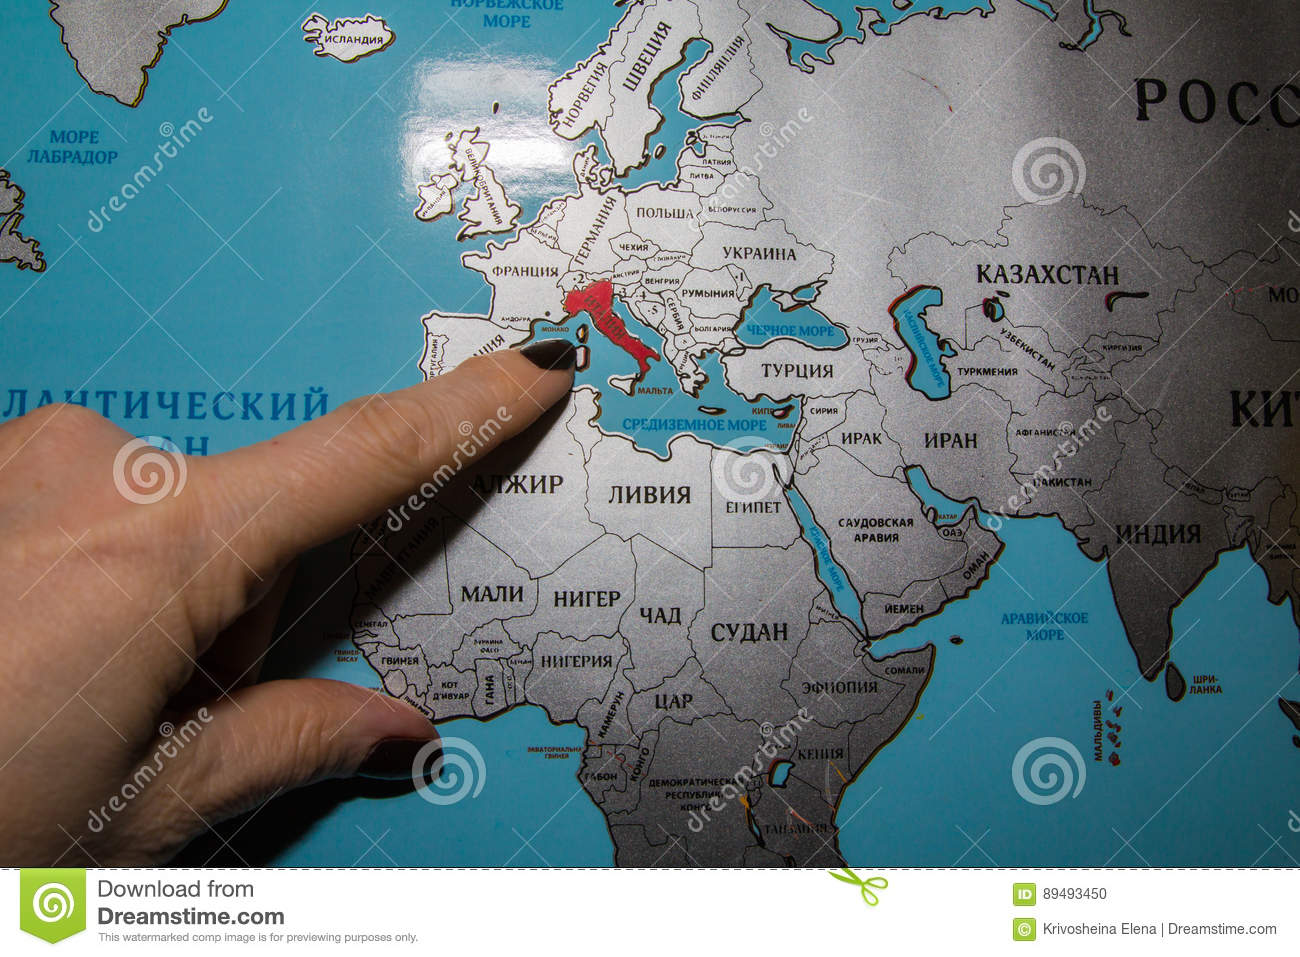 World map in russian language stock photo image of travel water world map in russian language travel water gumiabroncs Images